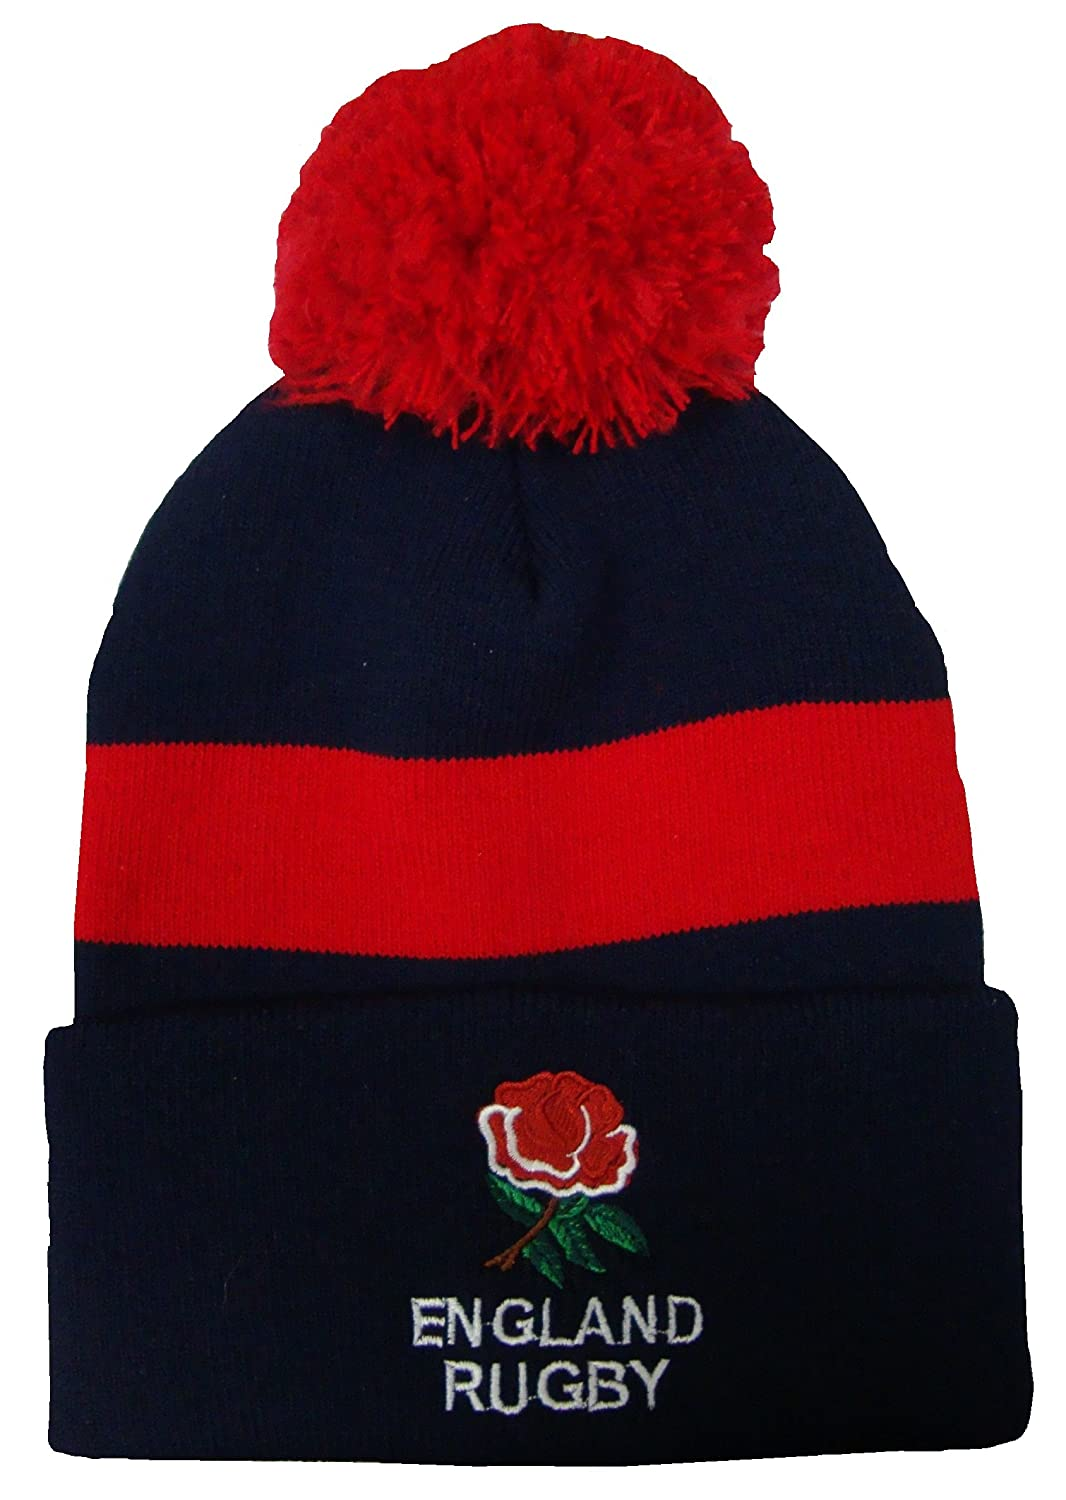 93c0cf4d66e Arena England Rugby Bobble Hat  Amazon.co.uk  Sports   Outdoors